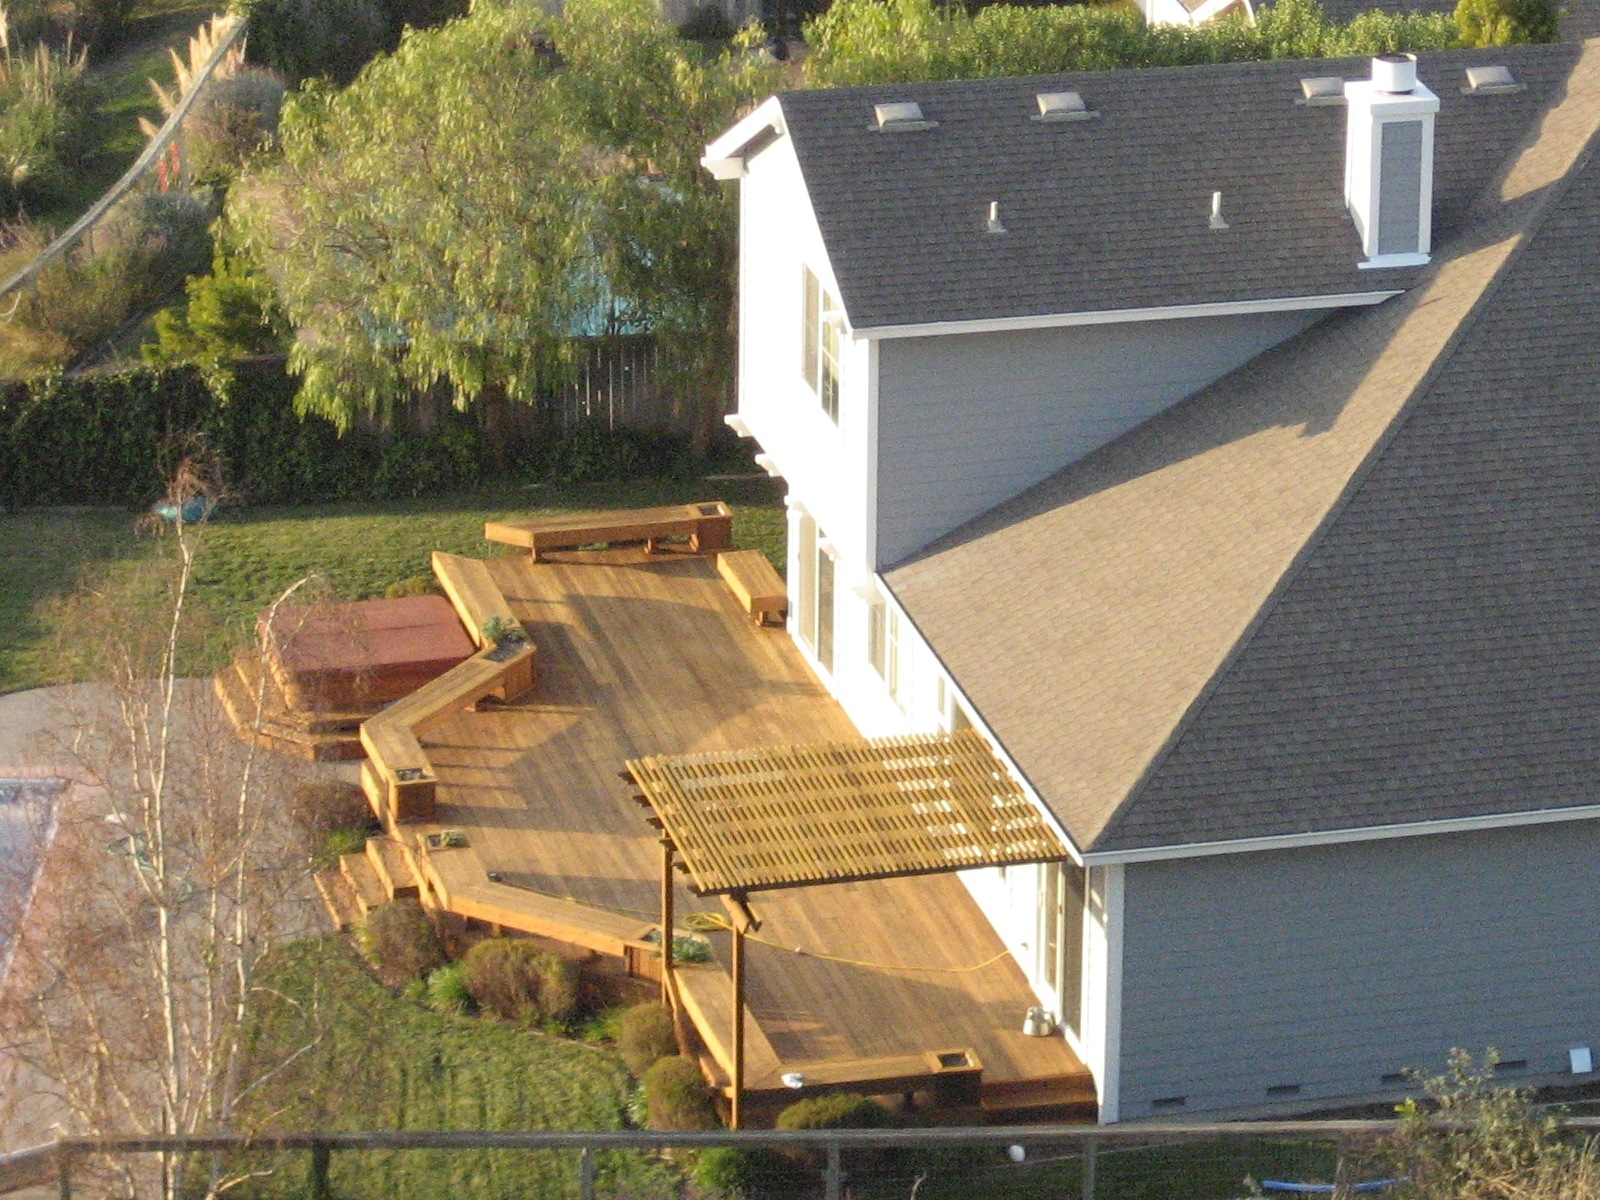 File Backyard Deck Jpg Wikipedia